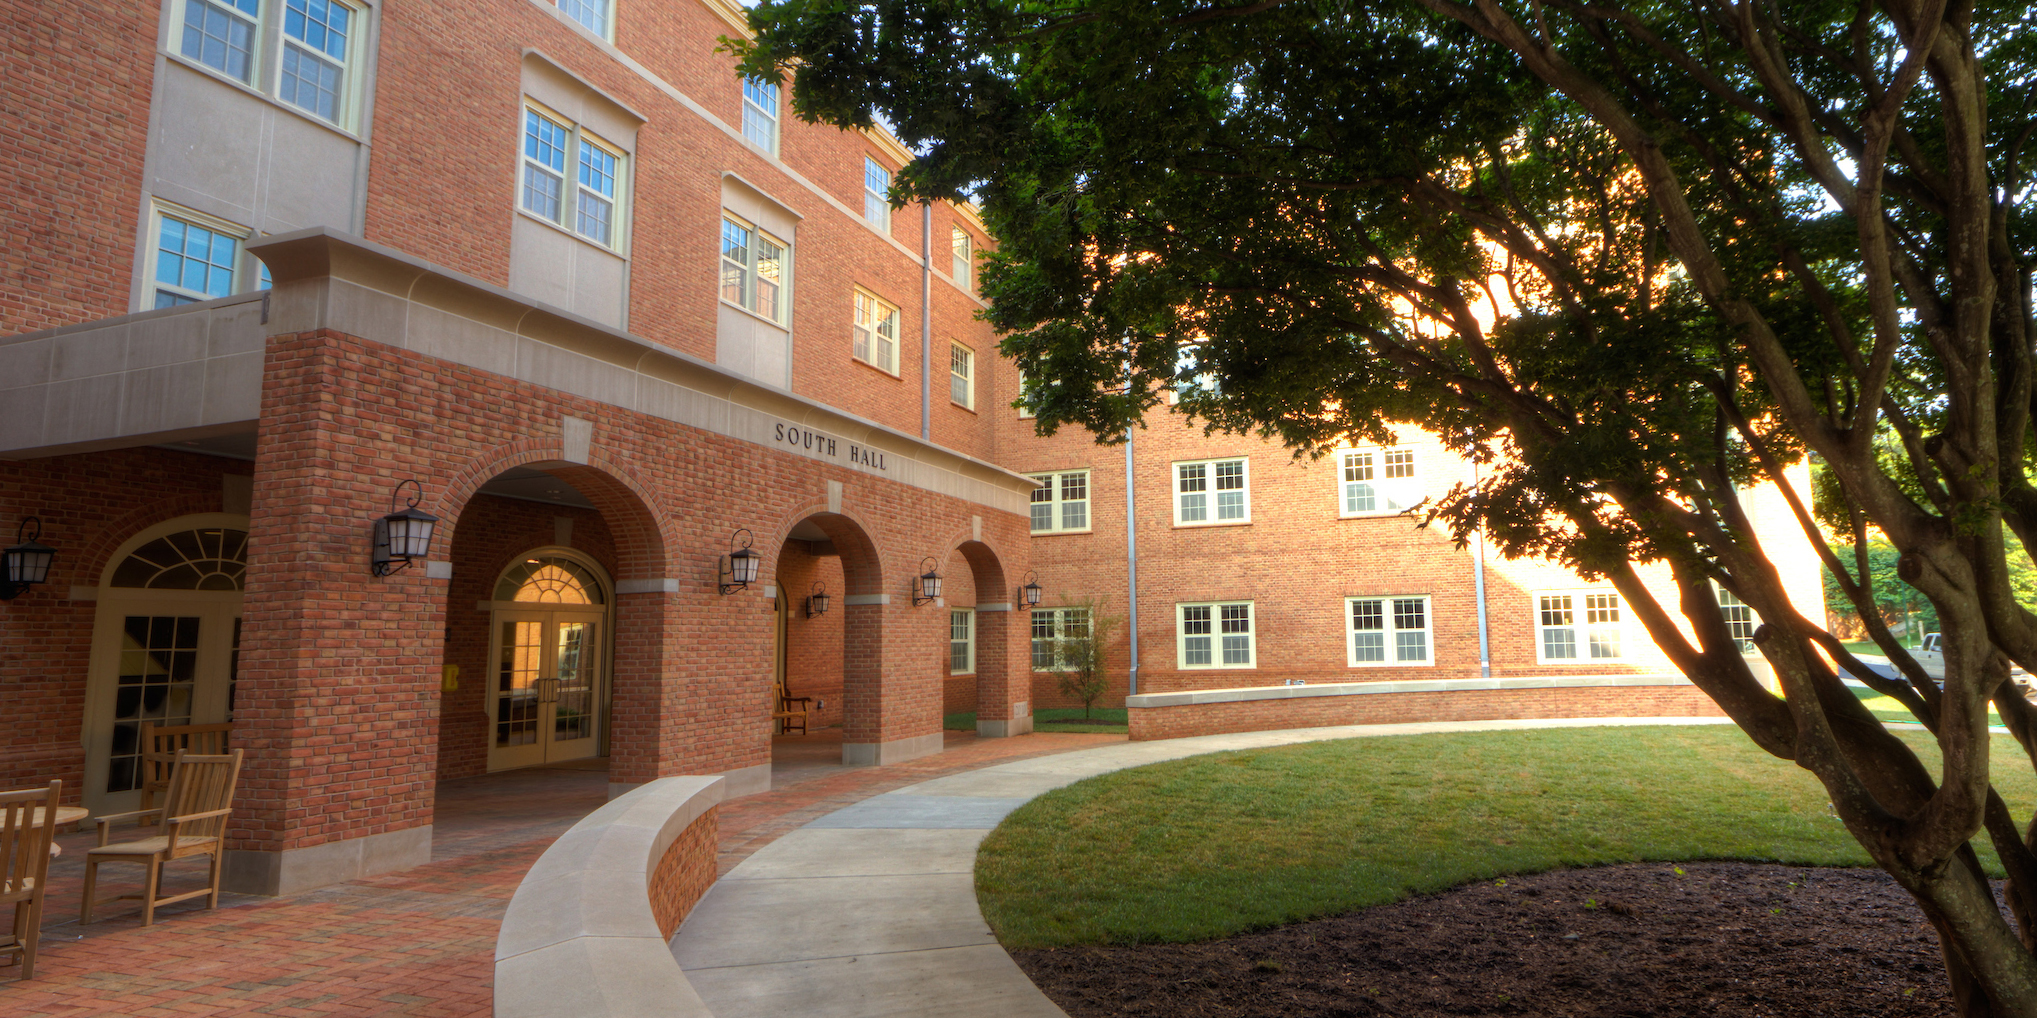 Walkway leading to South residence hall entrance